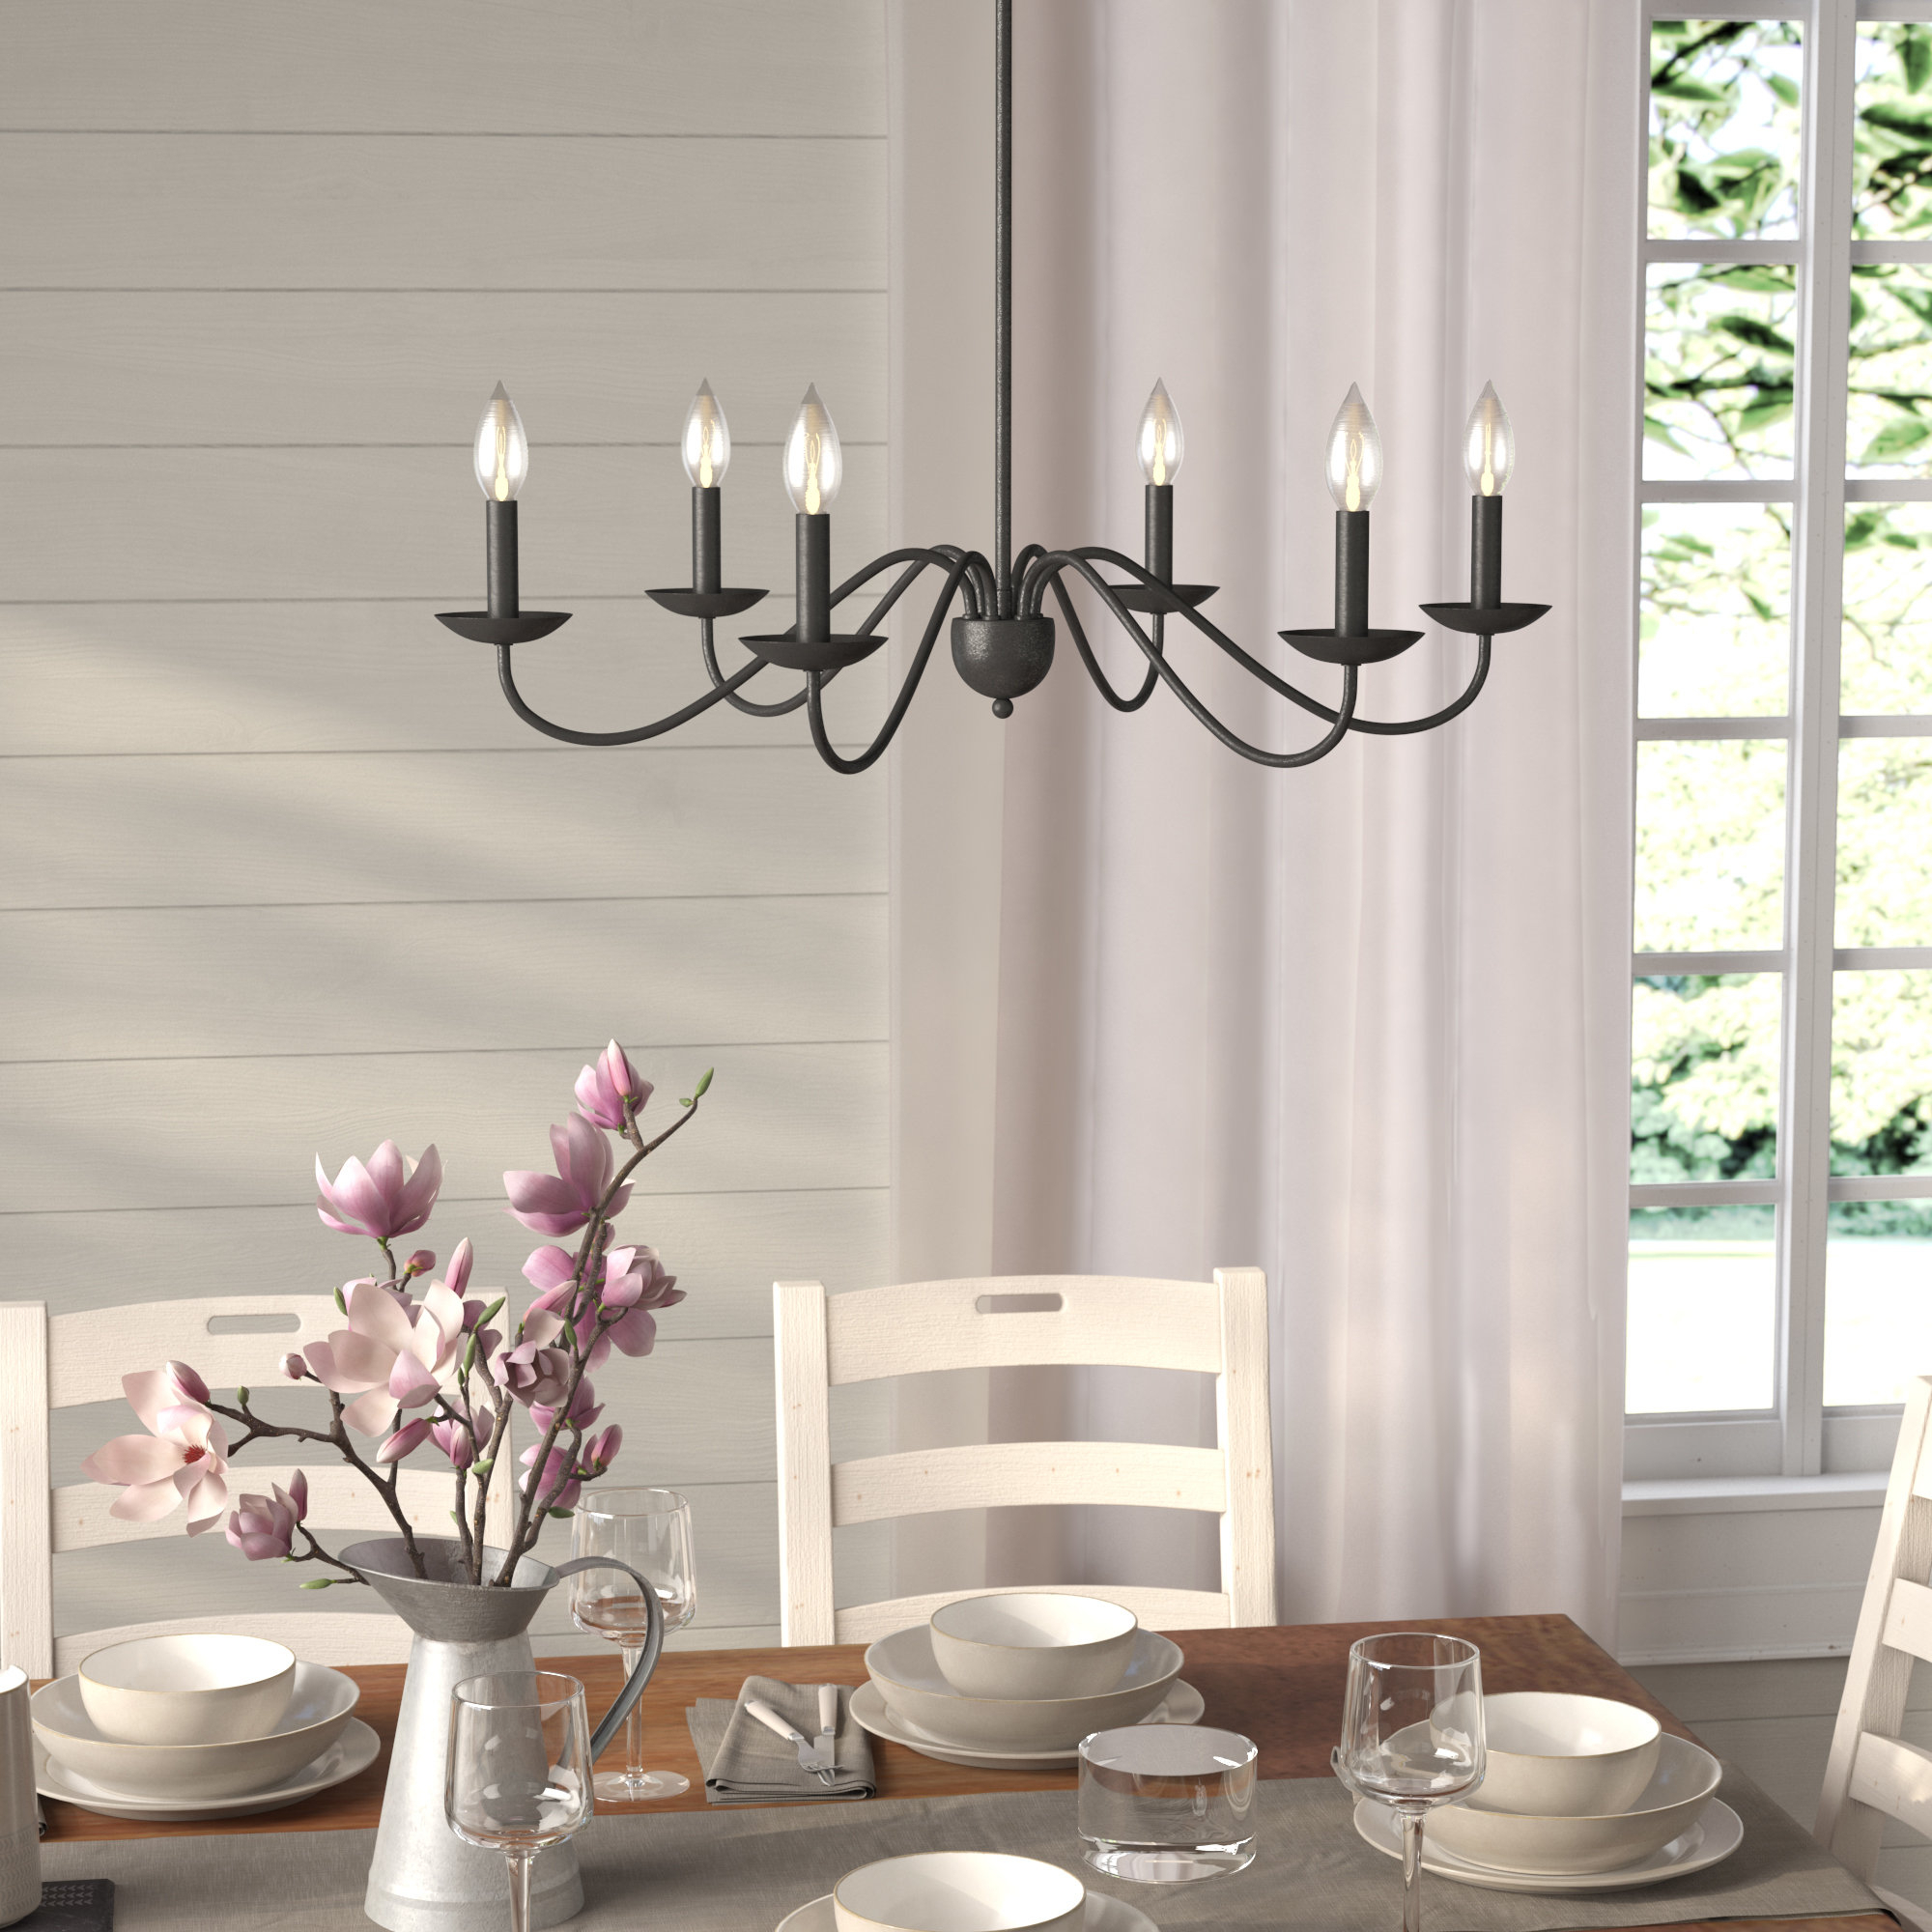 Perseus 6 Light Candle Style Chandelier Pertaining To Hamza 6 Light Candle Style Chandeliers (View 3 of 30)